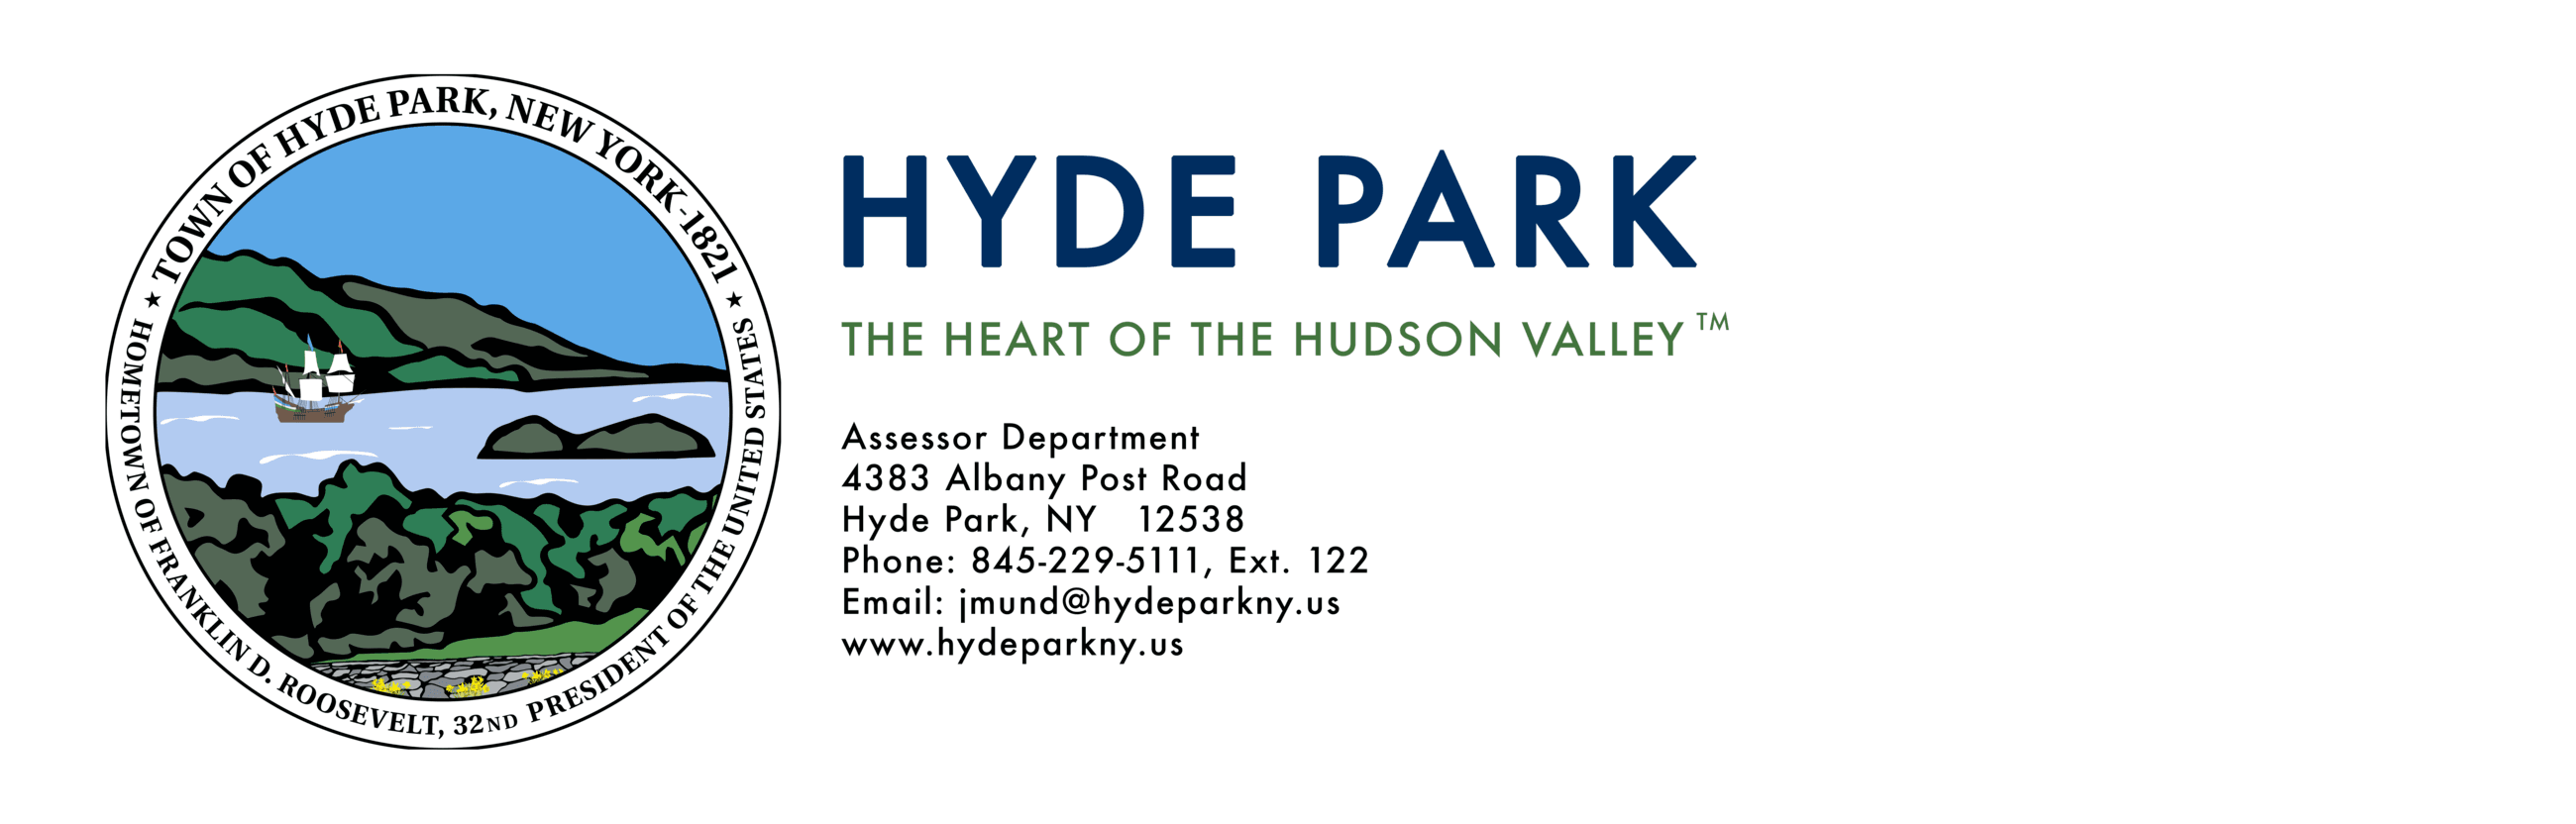 Hyde Park Logo and Tagline Assessors Department